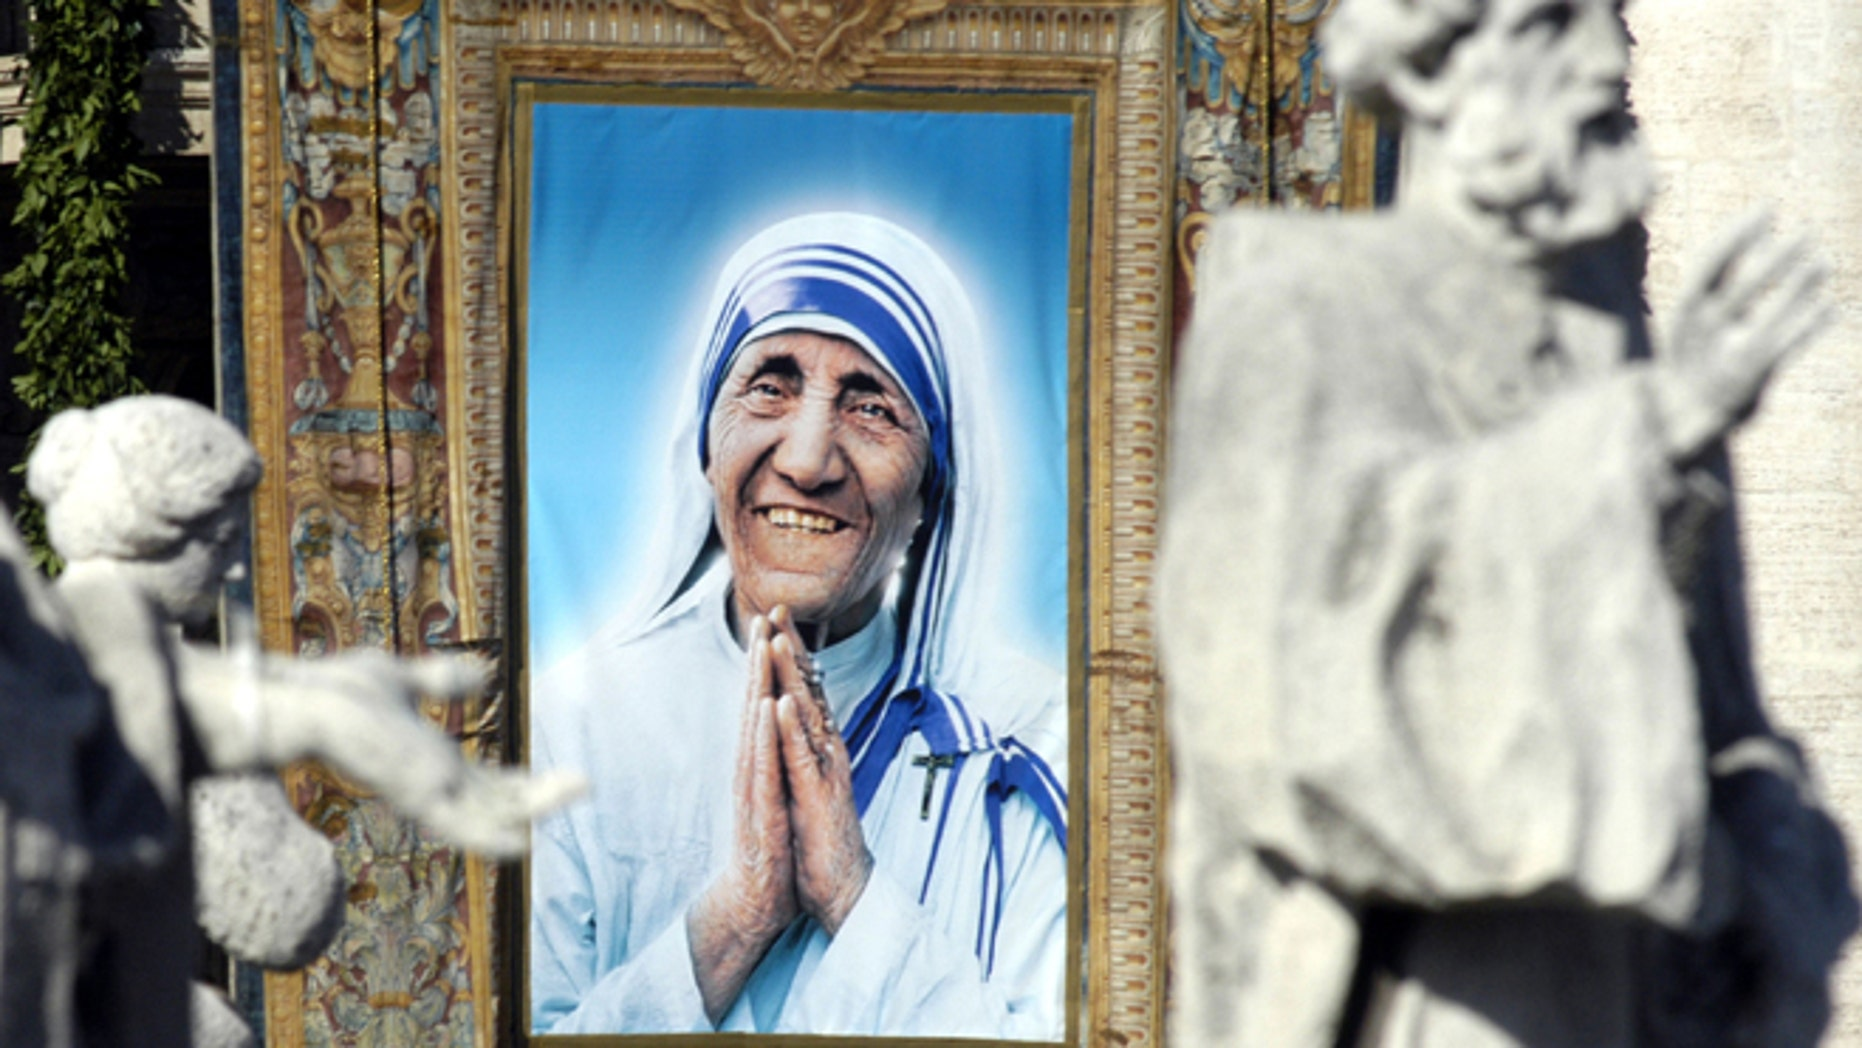 VATICAN  CITY - OCTOBER 19:  A tapestry depicting  Mother Teresa framed by the statues of  St. Peter's Colonnade during the beatification ceremony led by Pope John Paul II October 19, 2003 in Vatican City, Italy. Mother Teresa won the Nobel Peace Prize in 1979 for all of her charity work. She died in 1997.  (Photo by Franco Origlia/Getty Images)